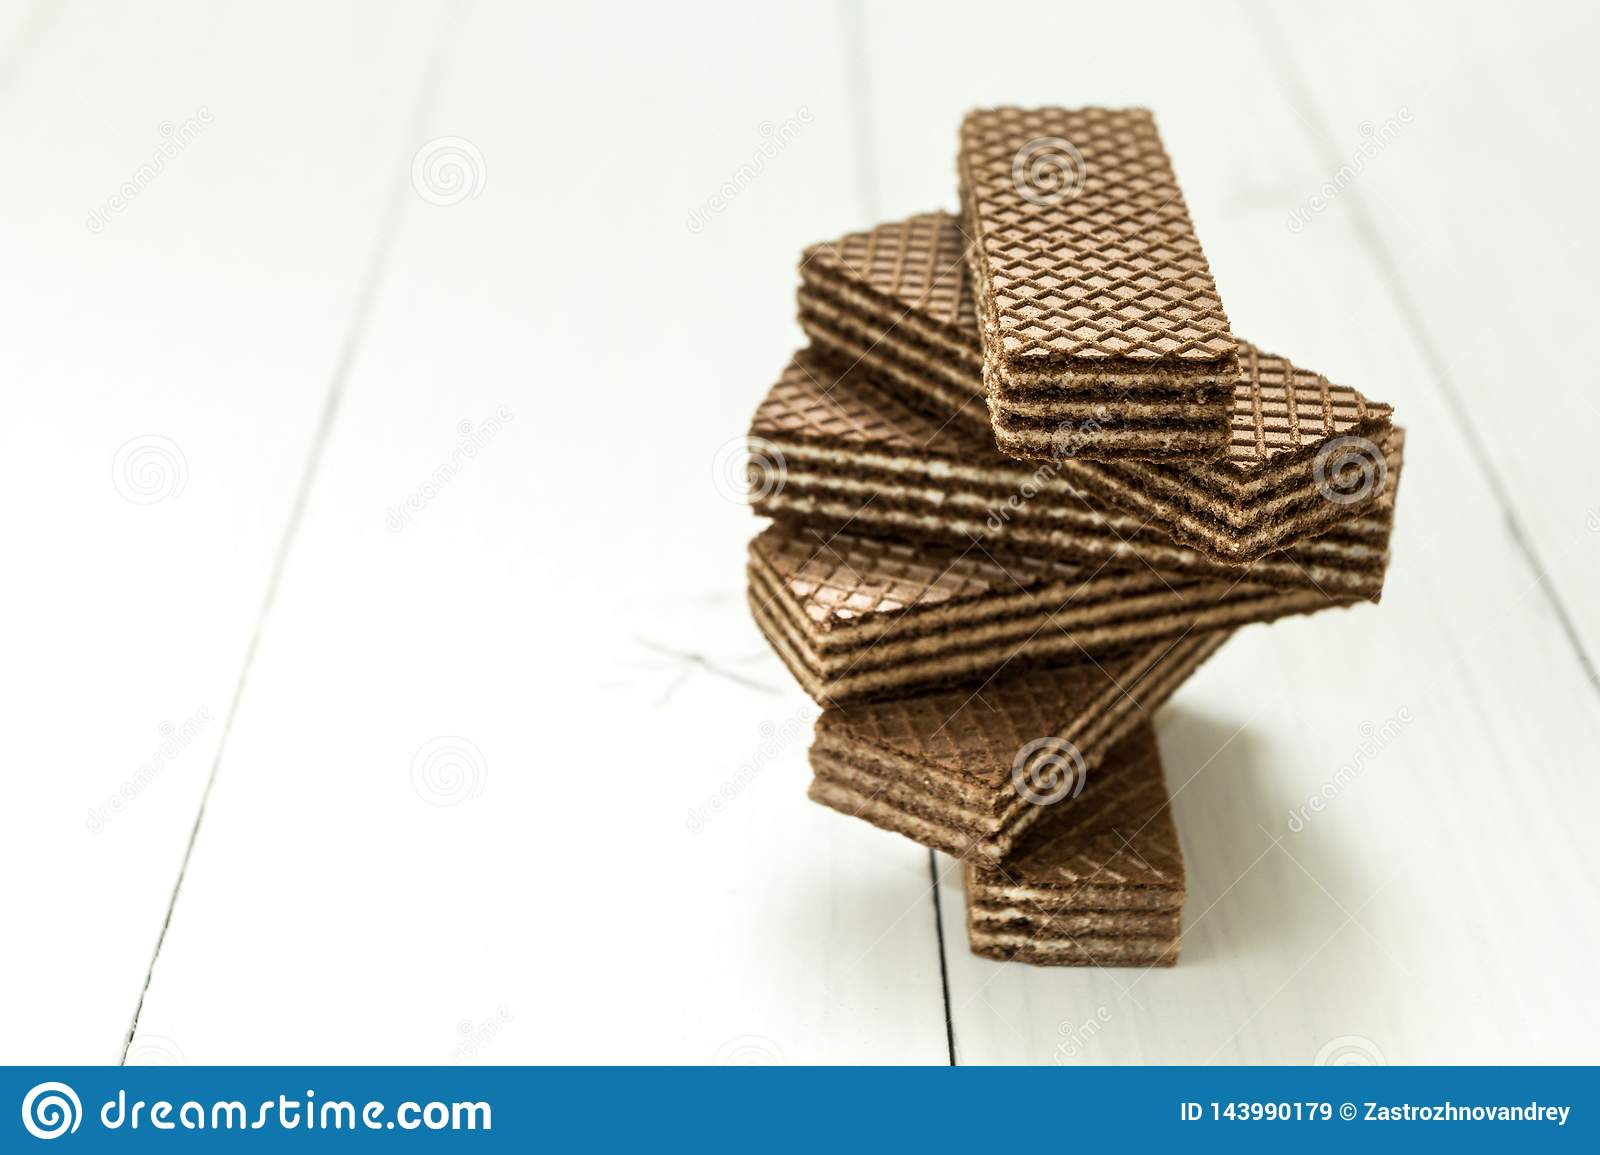 A swirling stack of chocolate wafers on a white table